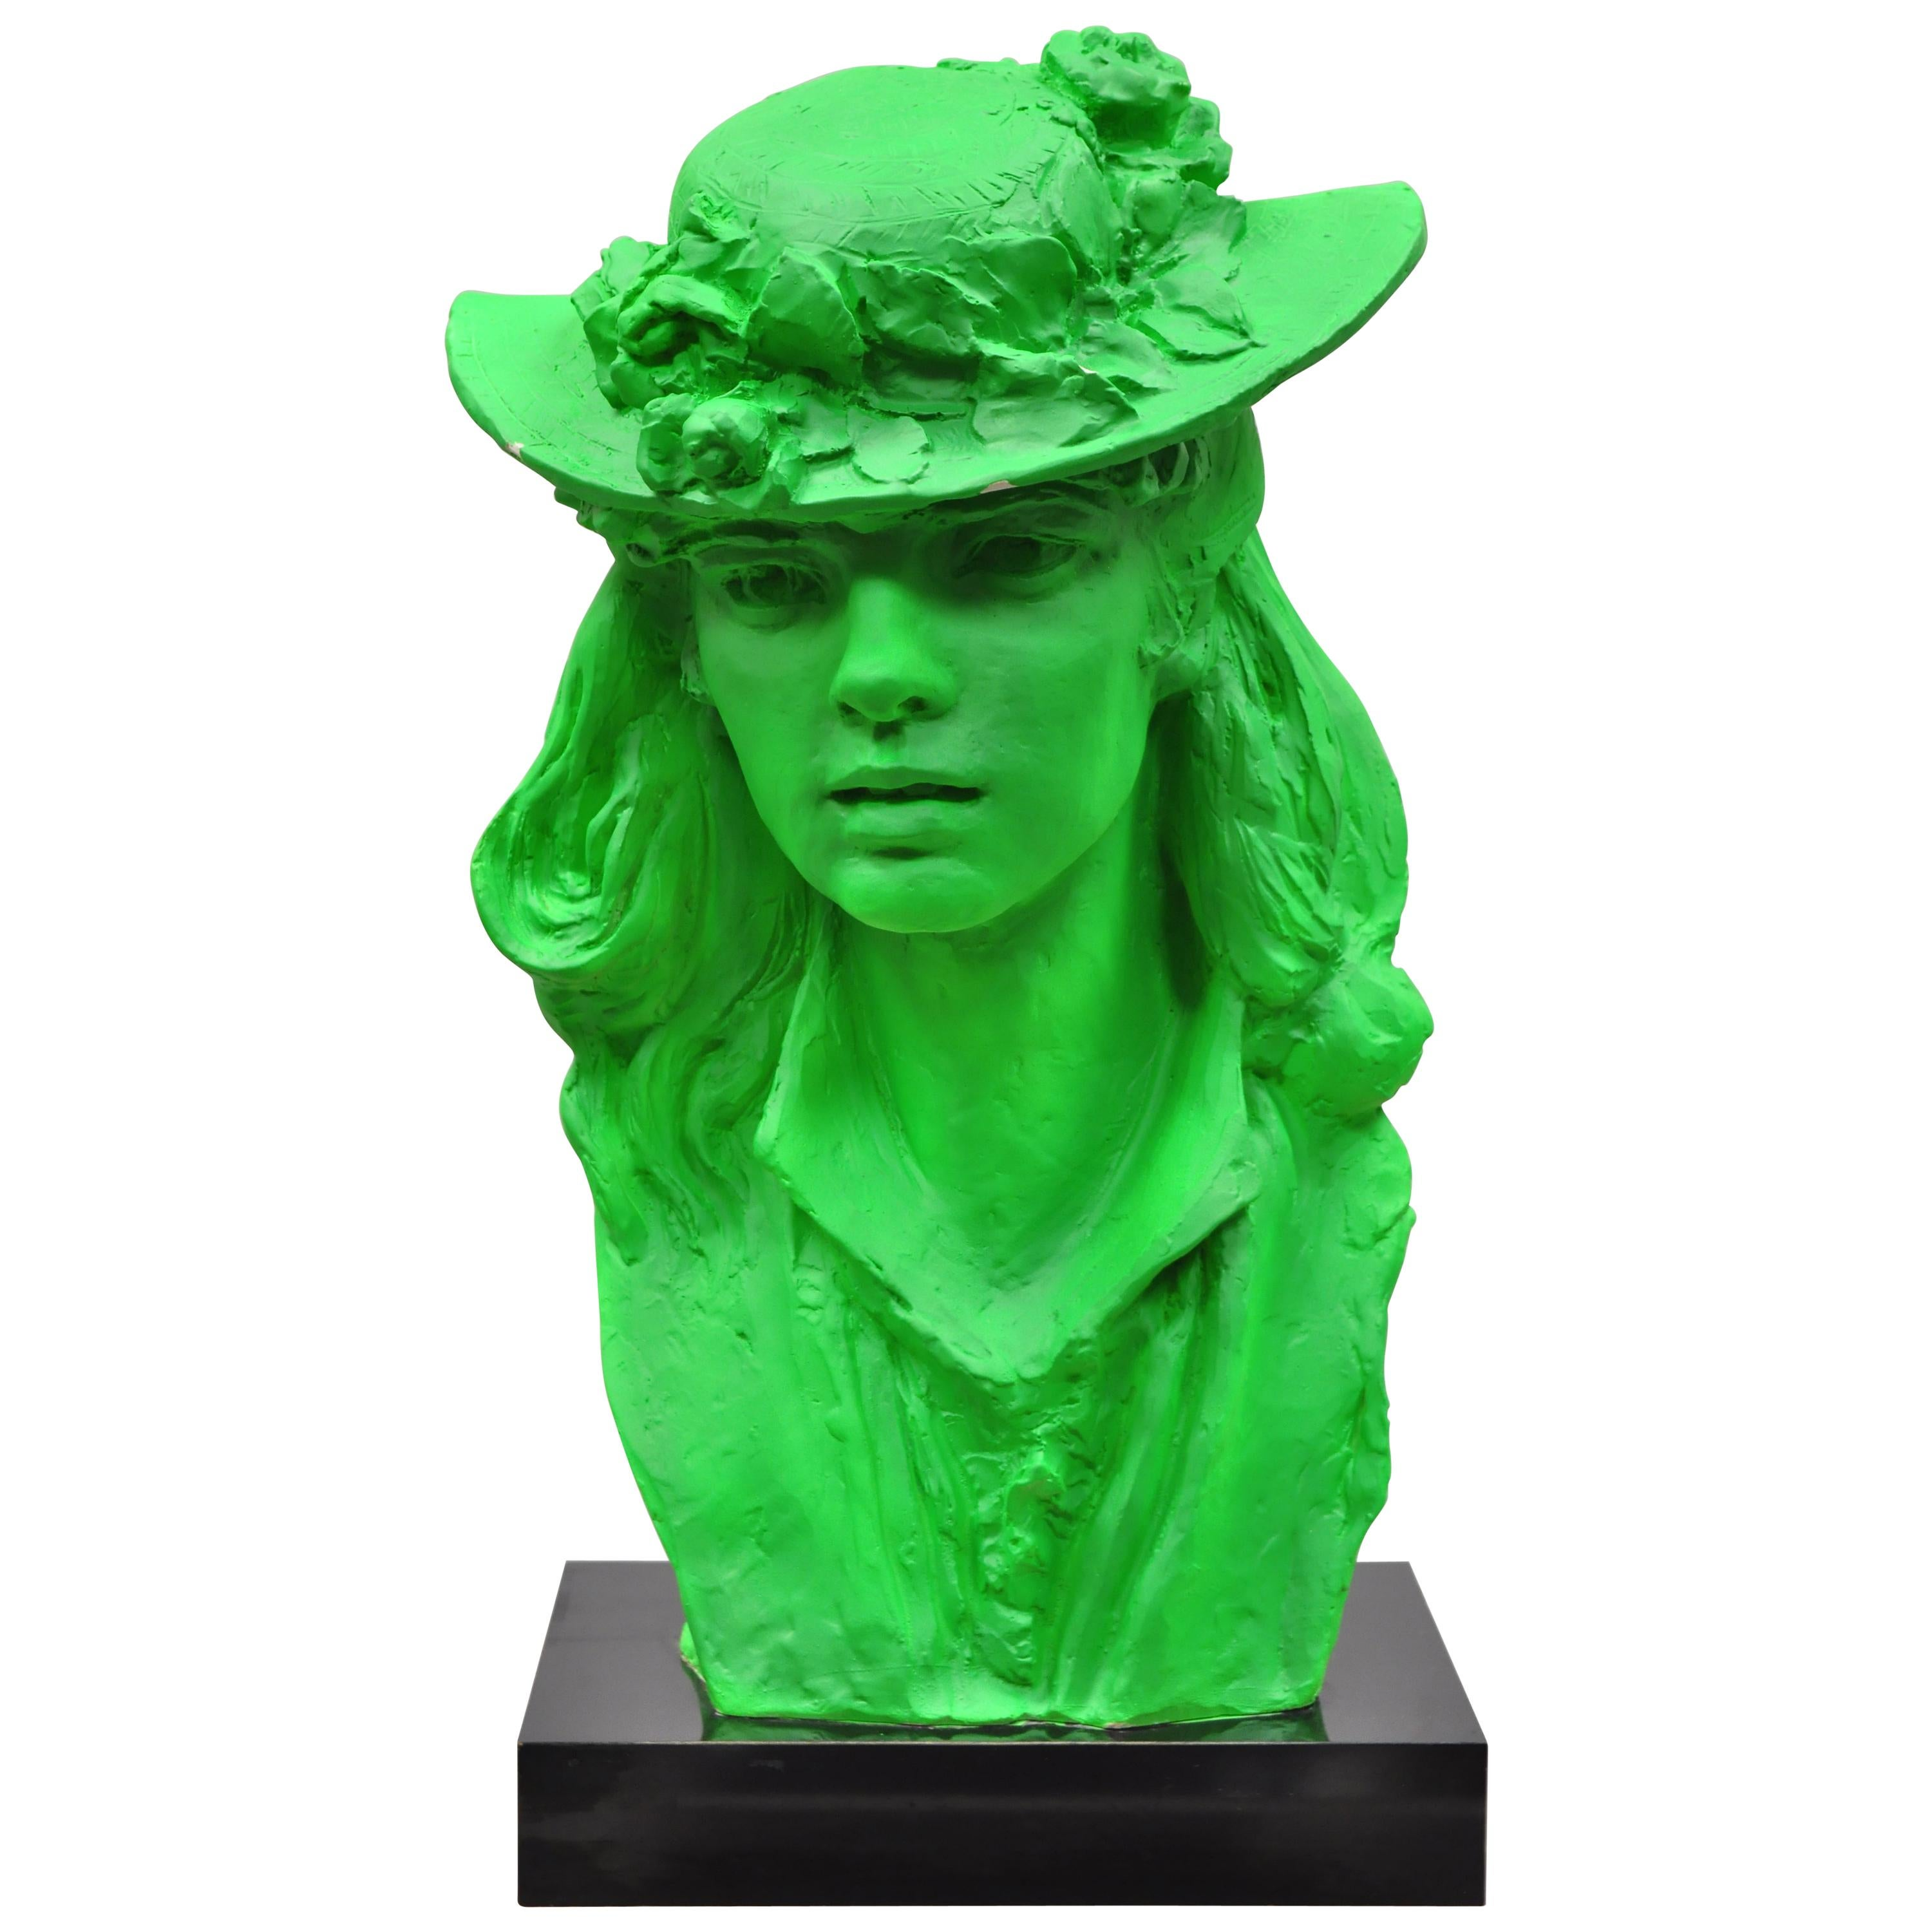 1979 Green Victorian Style Plaster Sculpture Woman Bust in Hat by Austin Prod.